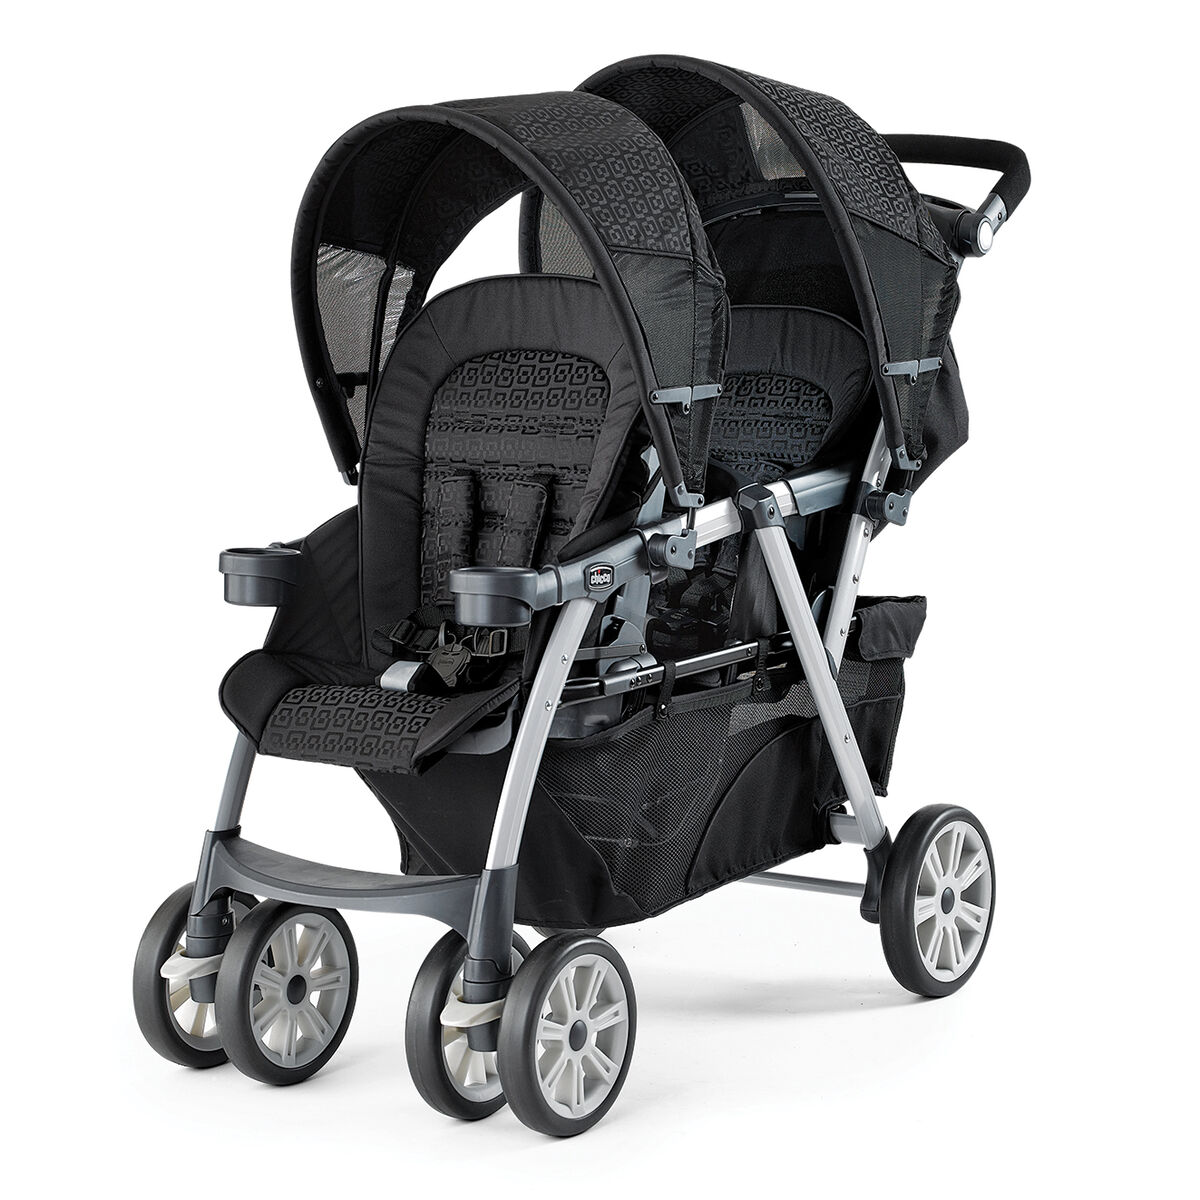 chicco cortina together double stroller  ombra - cortina together double stroller  ombracortina together double stroller ombra